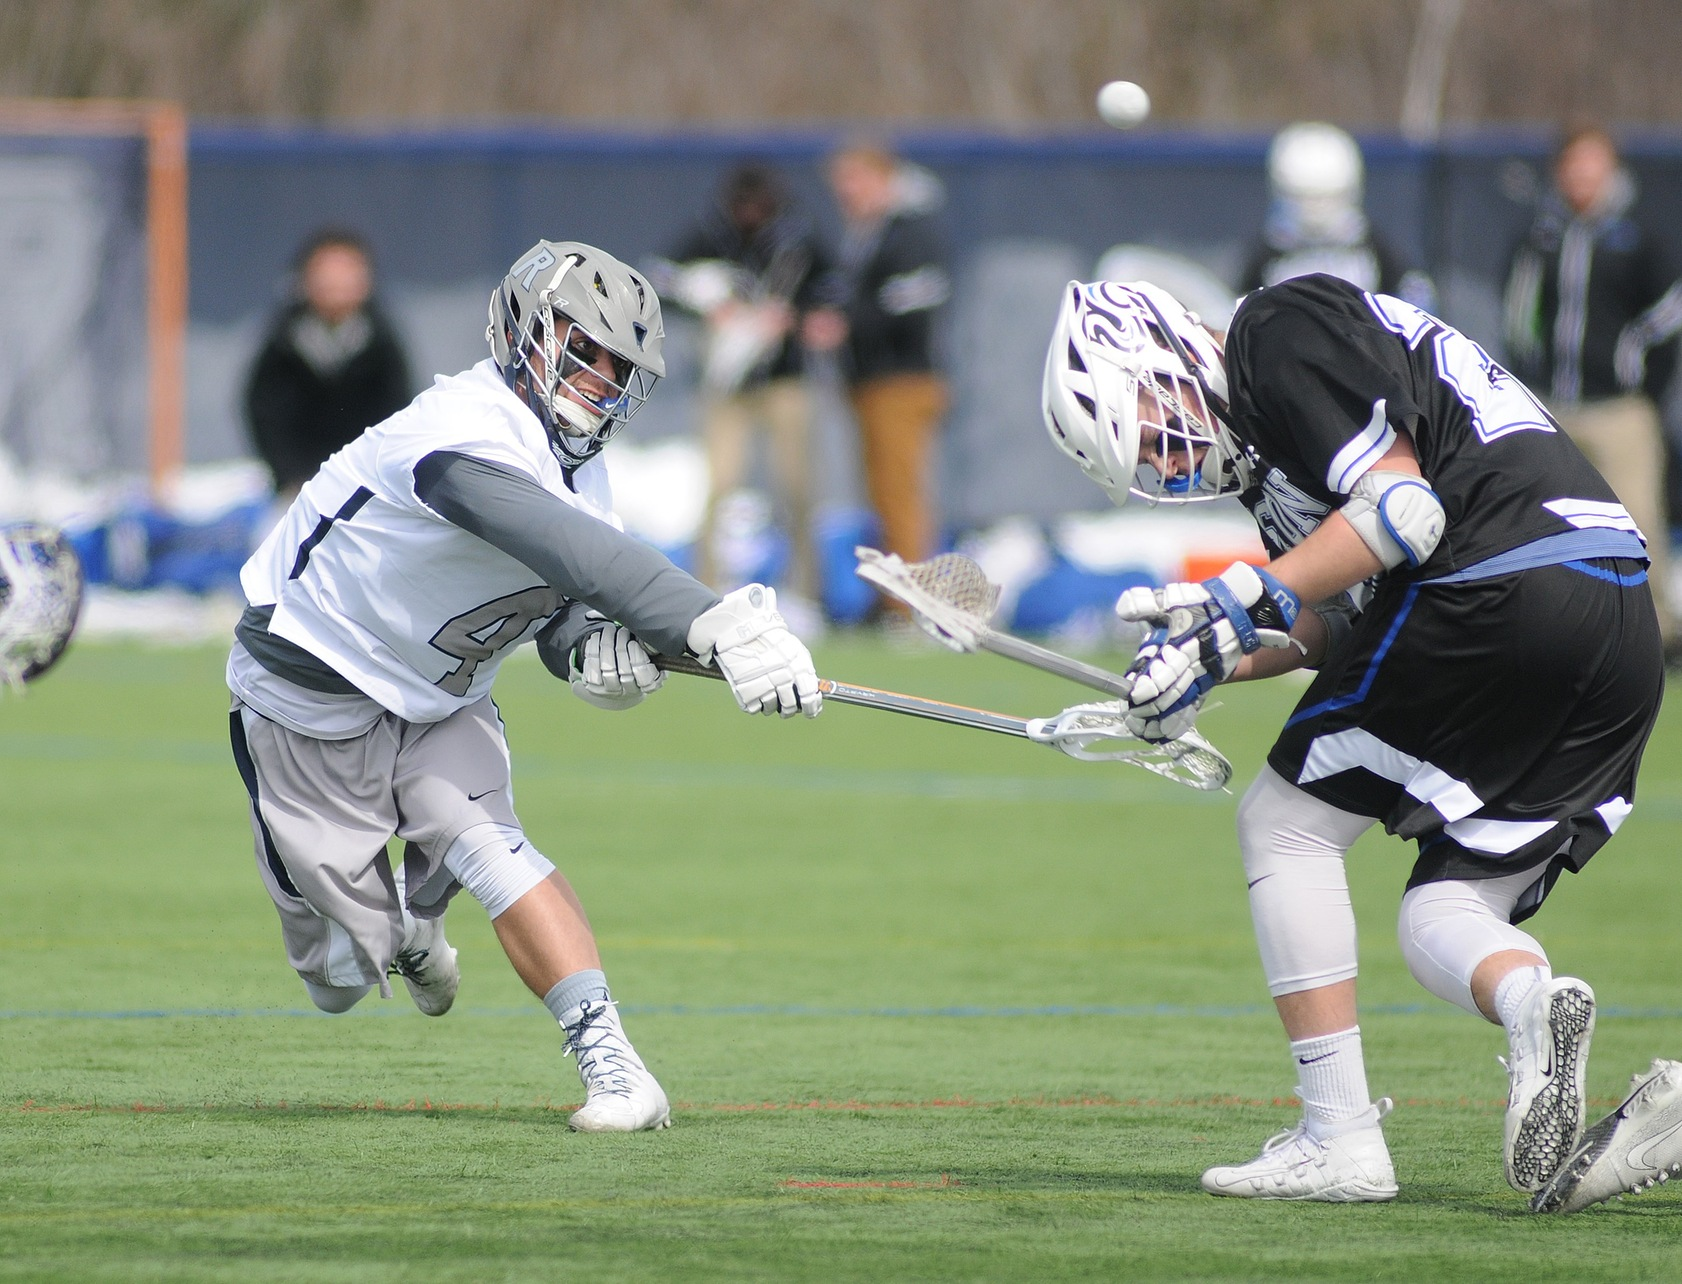 Men's Lacrosse: Raiders Collar Wildcats To Surge Into First, 16-7